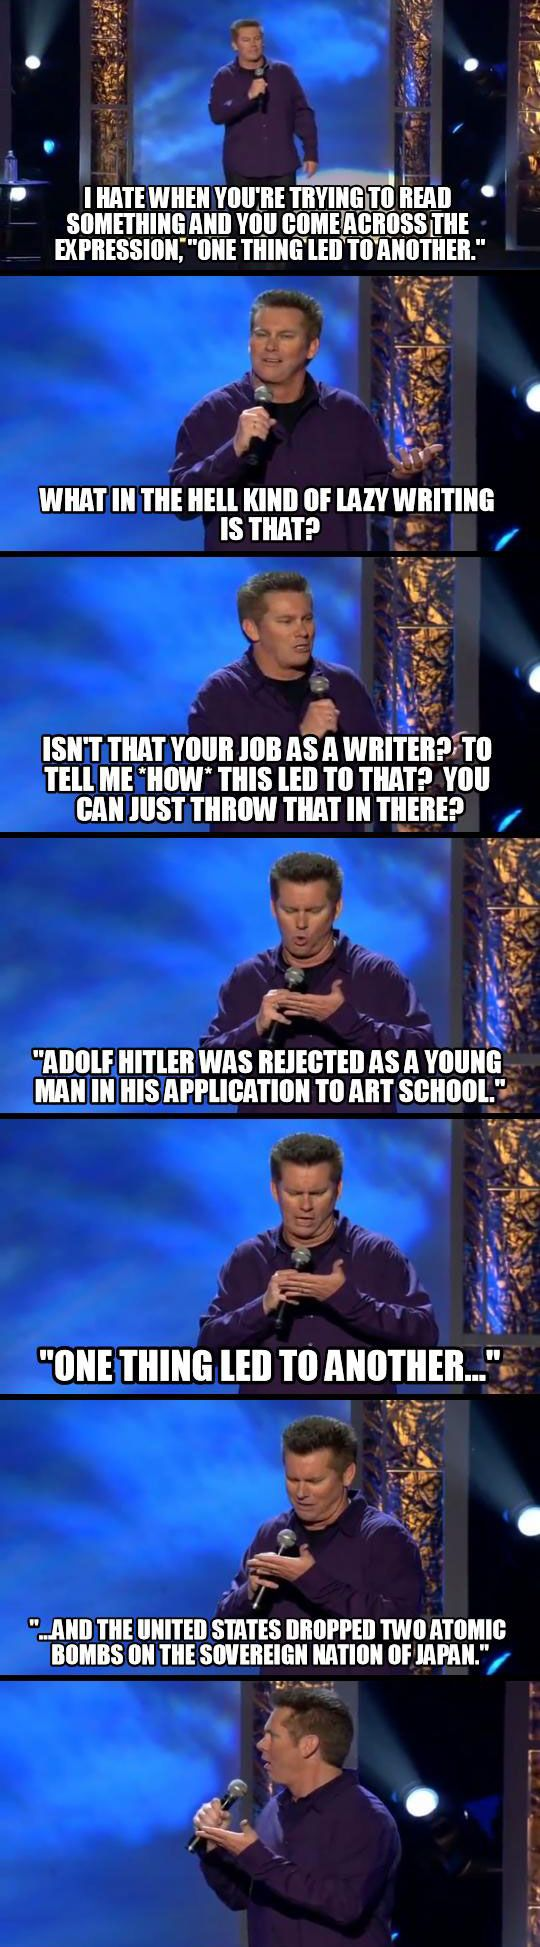 Brian Regan is still one of my favorite comedians. -D